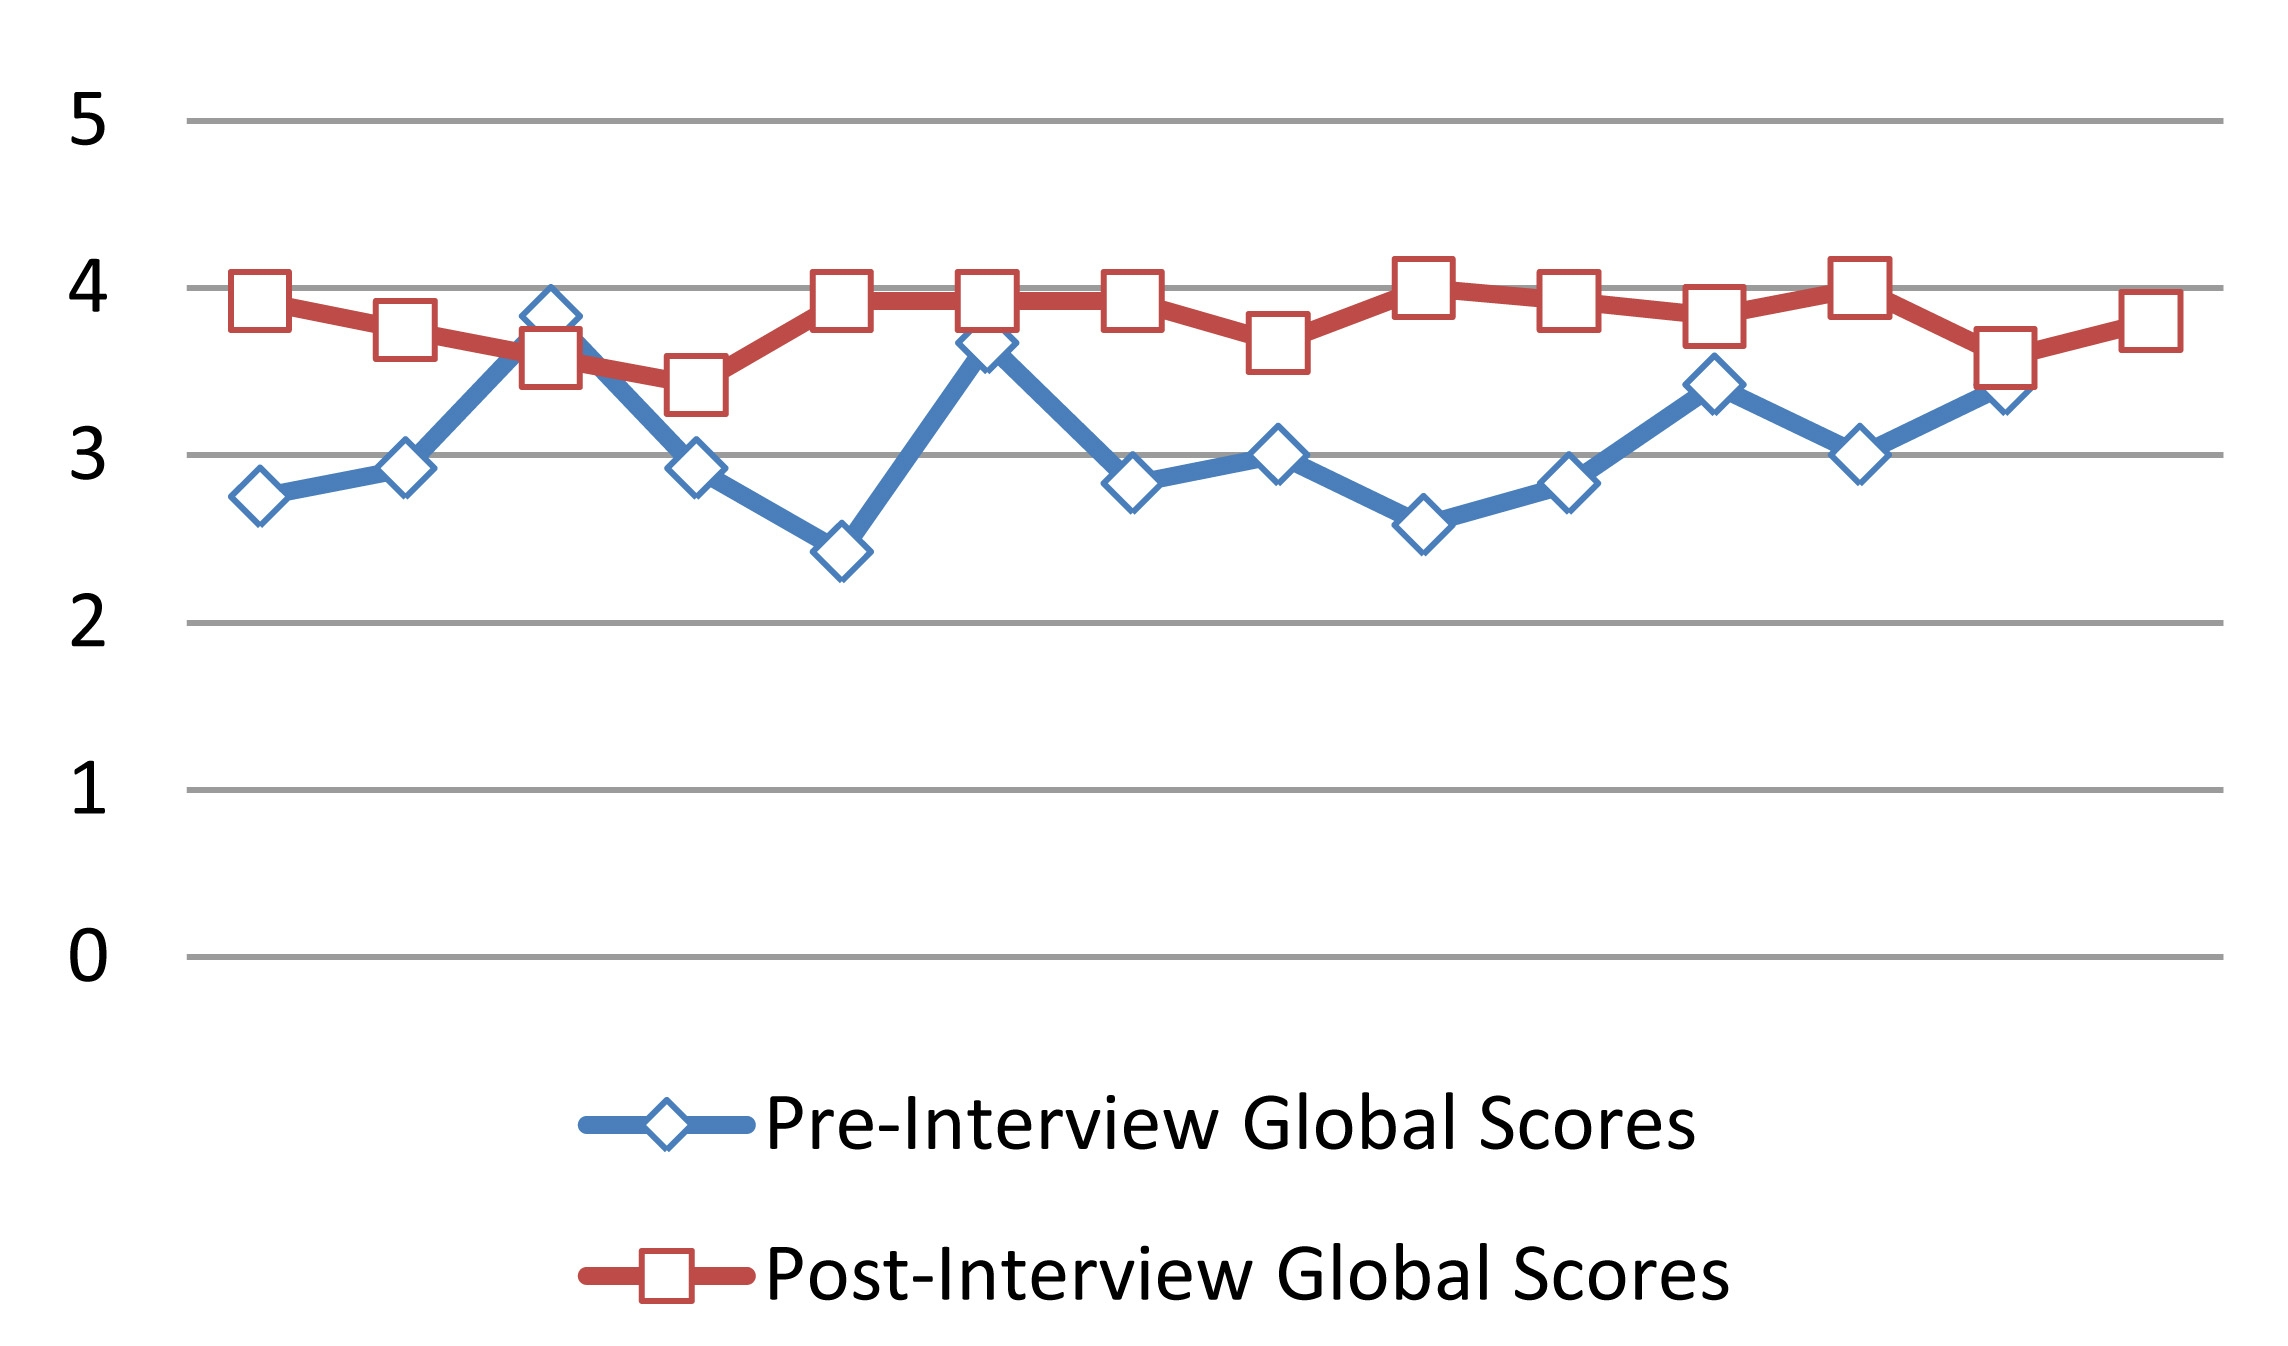 a pilot study of motivational interviewing training in a change in global motivational interviewing scores after training